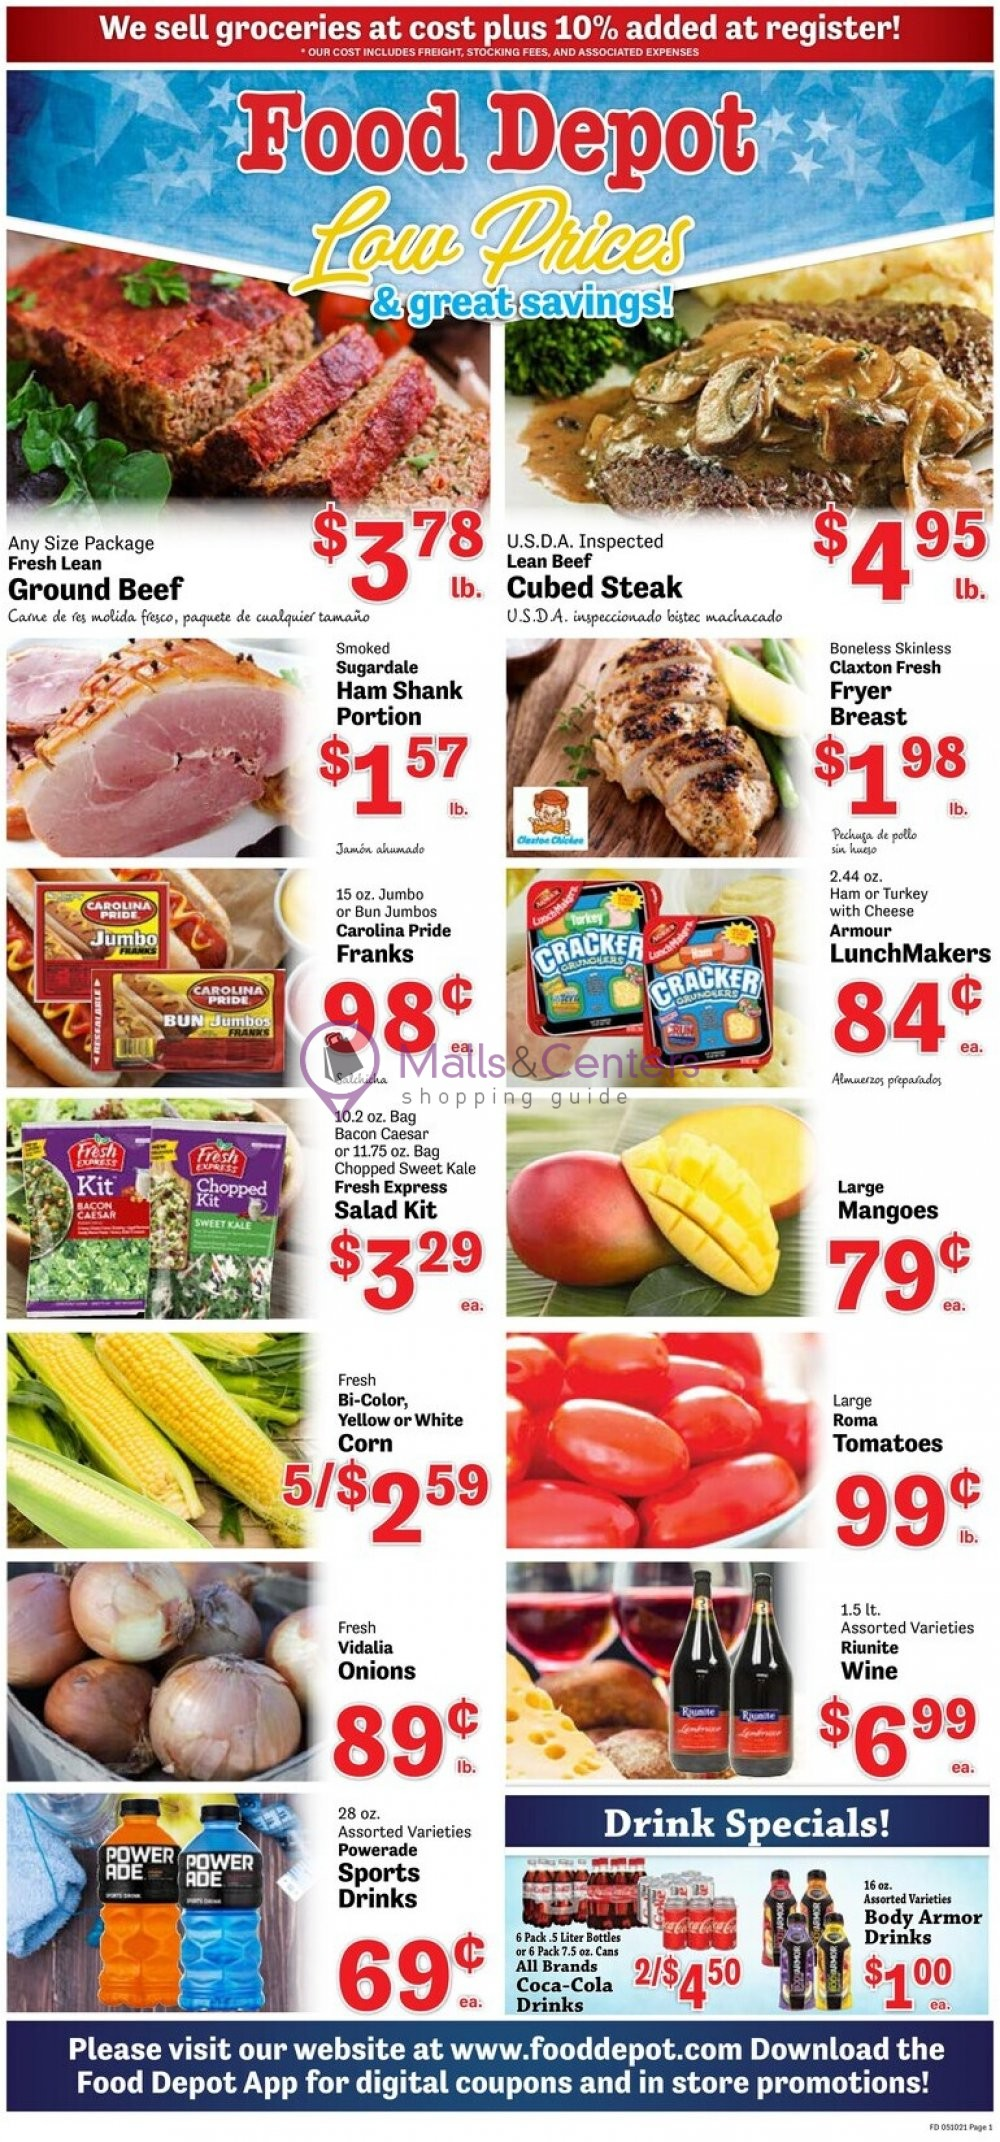 weekly ads Food Depot - page 1 - mallscenters.com